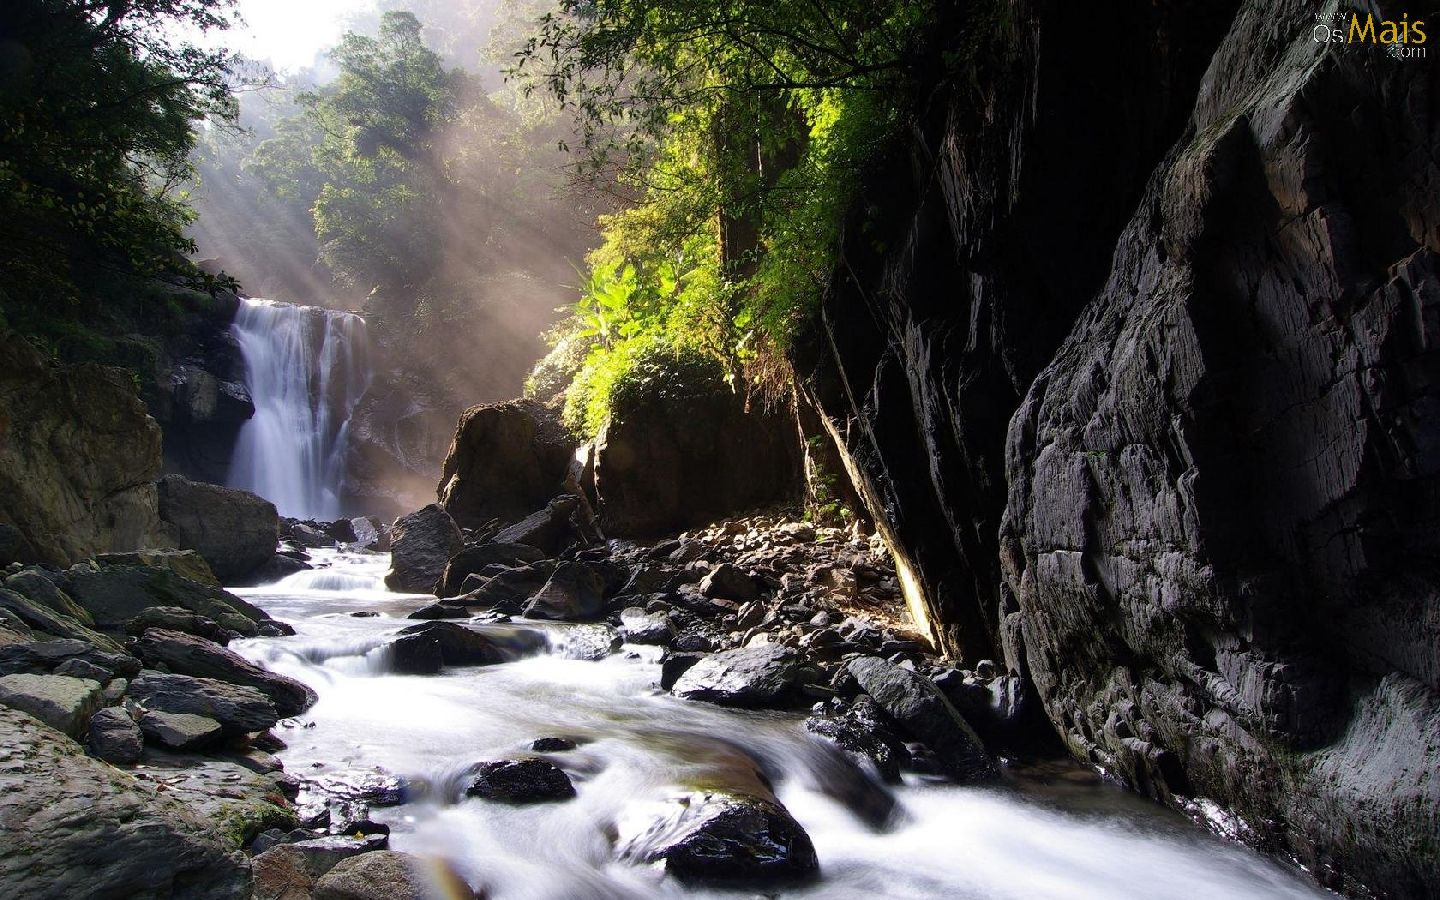 http://www.osmais.com/wallpapers/201201/cachoeira-mata-wallpaper-1440x900.jpg